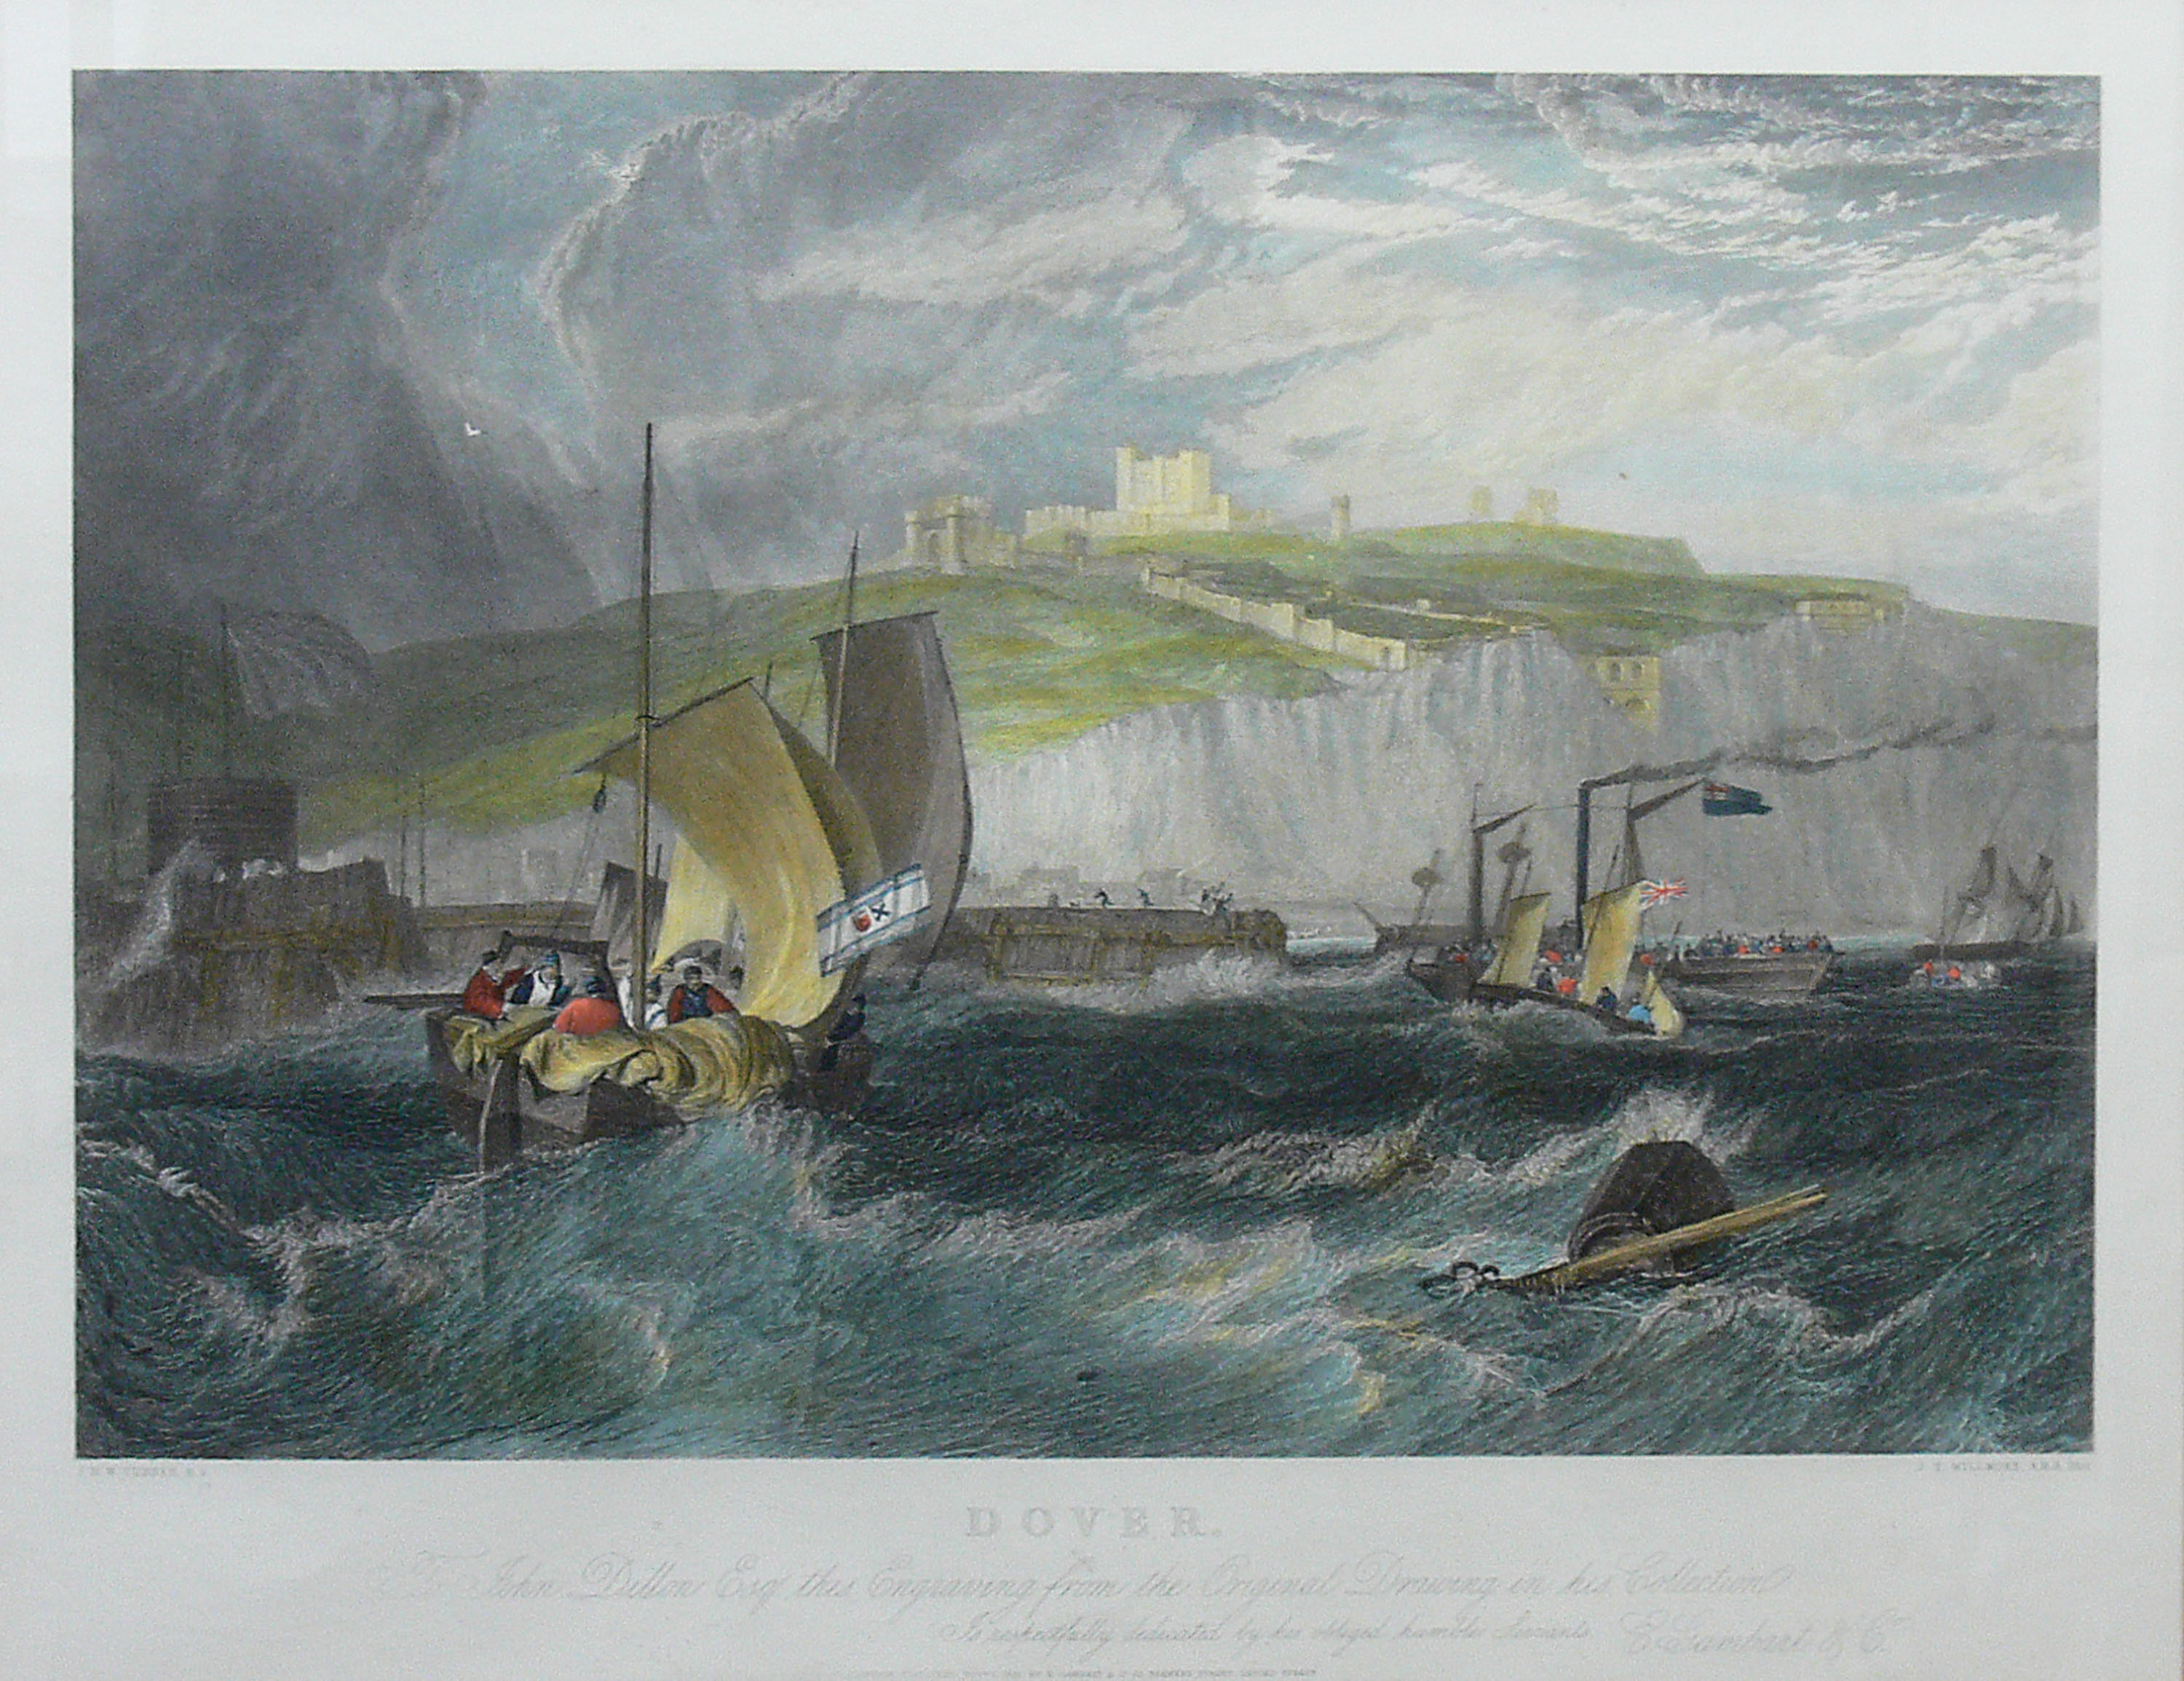 dover-1851-r-james-tibbits-willmore